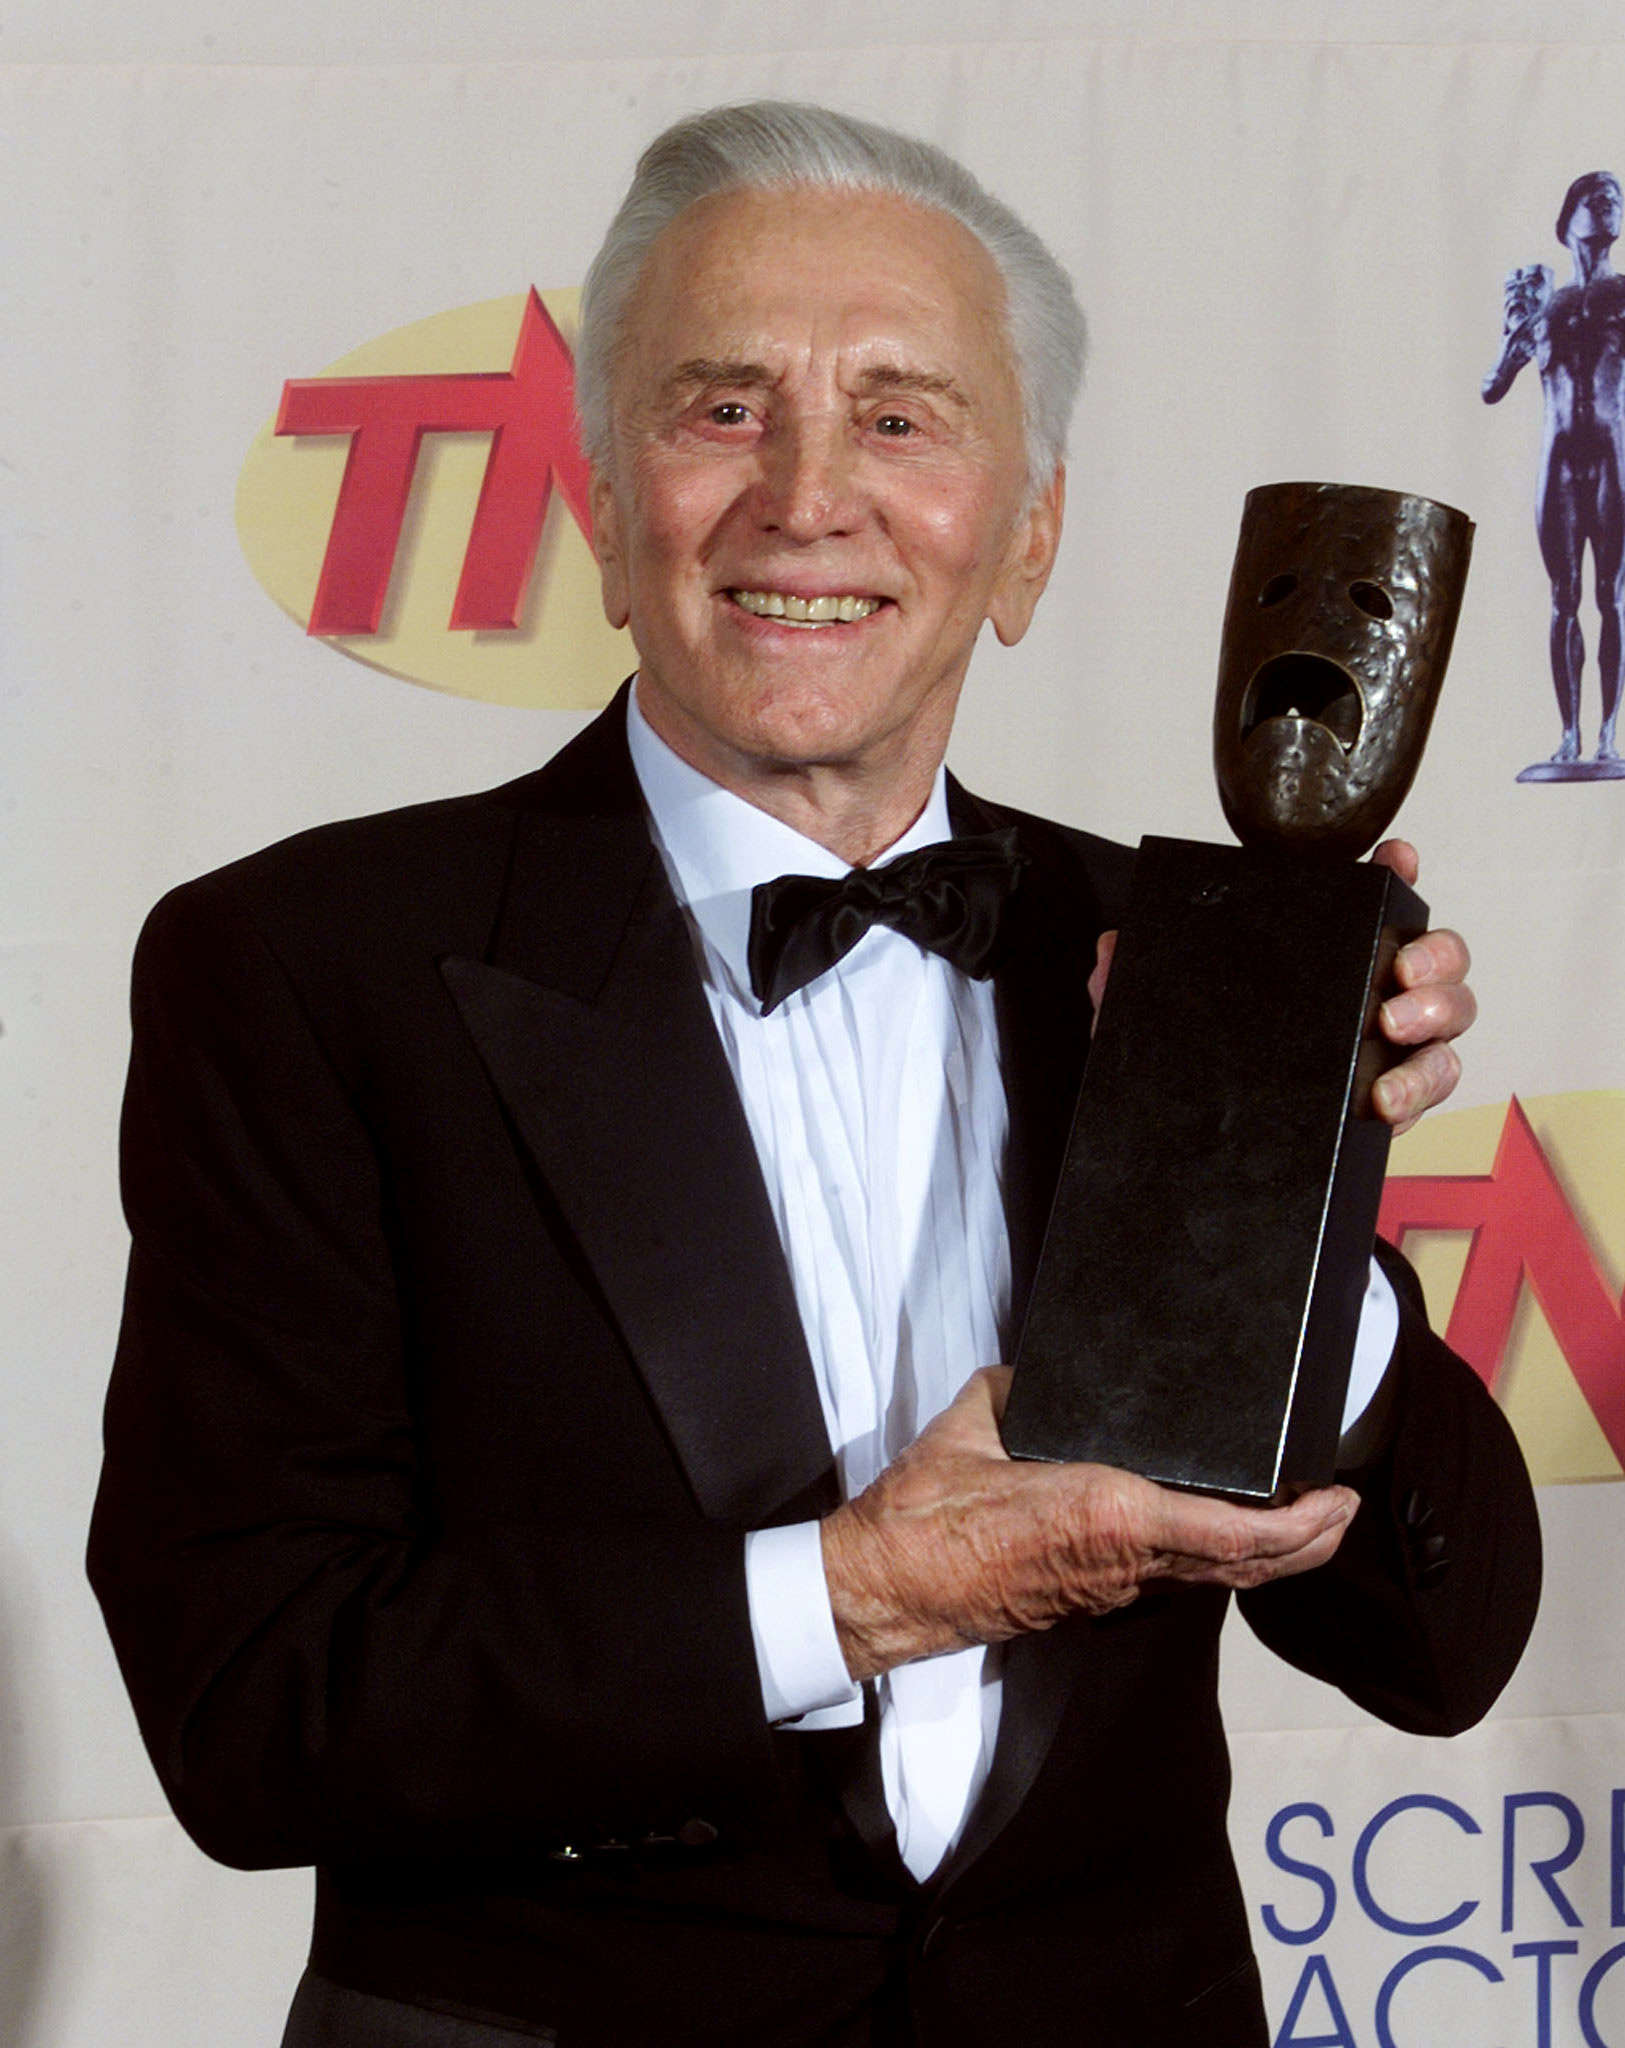 Kirk Douglas with his Screen Actors Guild Life Achievement Award which was presented to him at the 5th Annual Screen Actors Guild Awards in Los Angeles in March 1999.